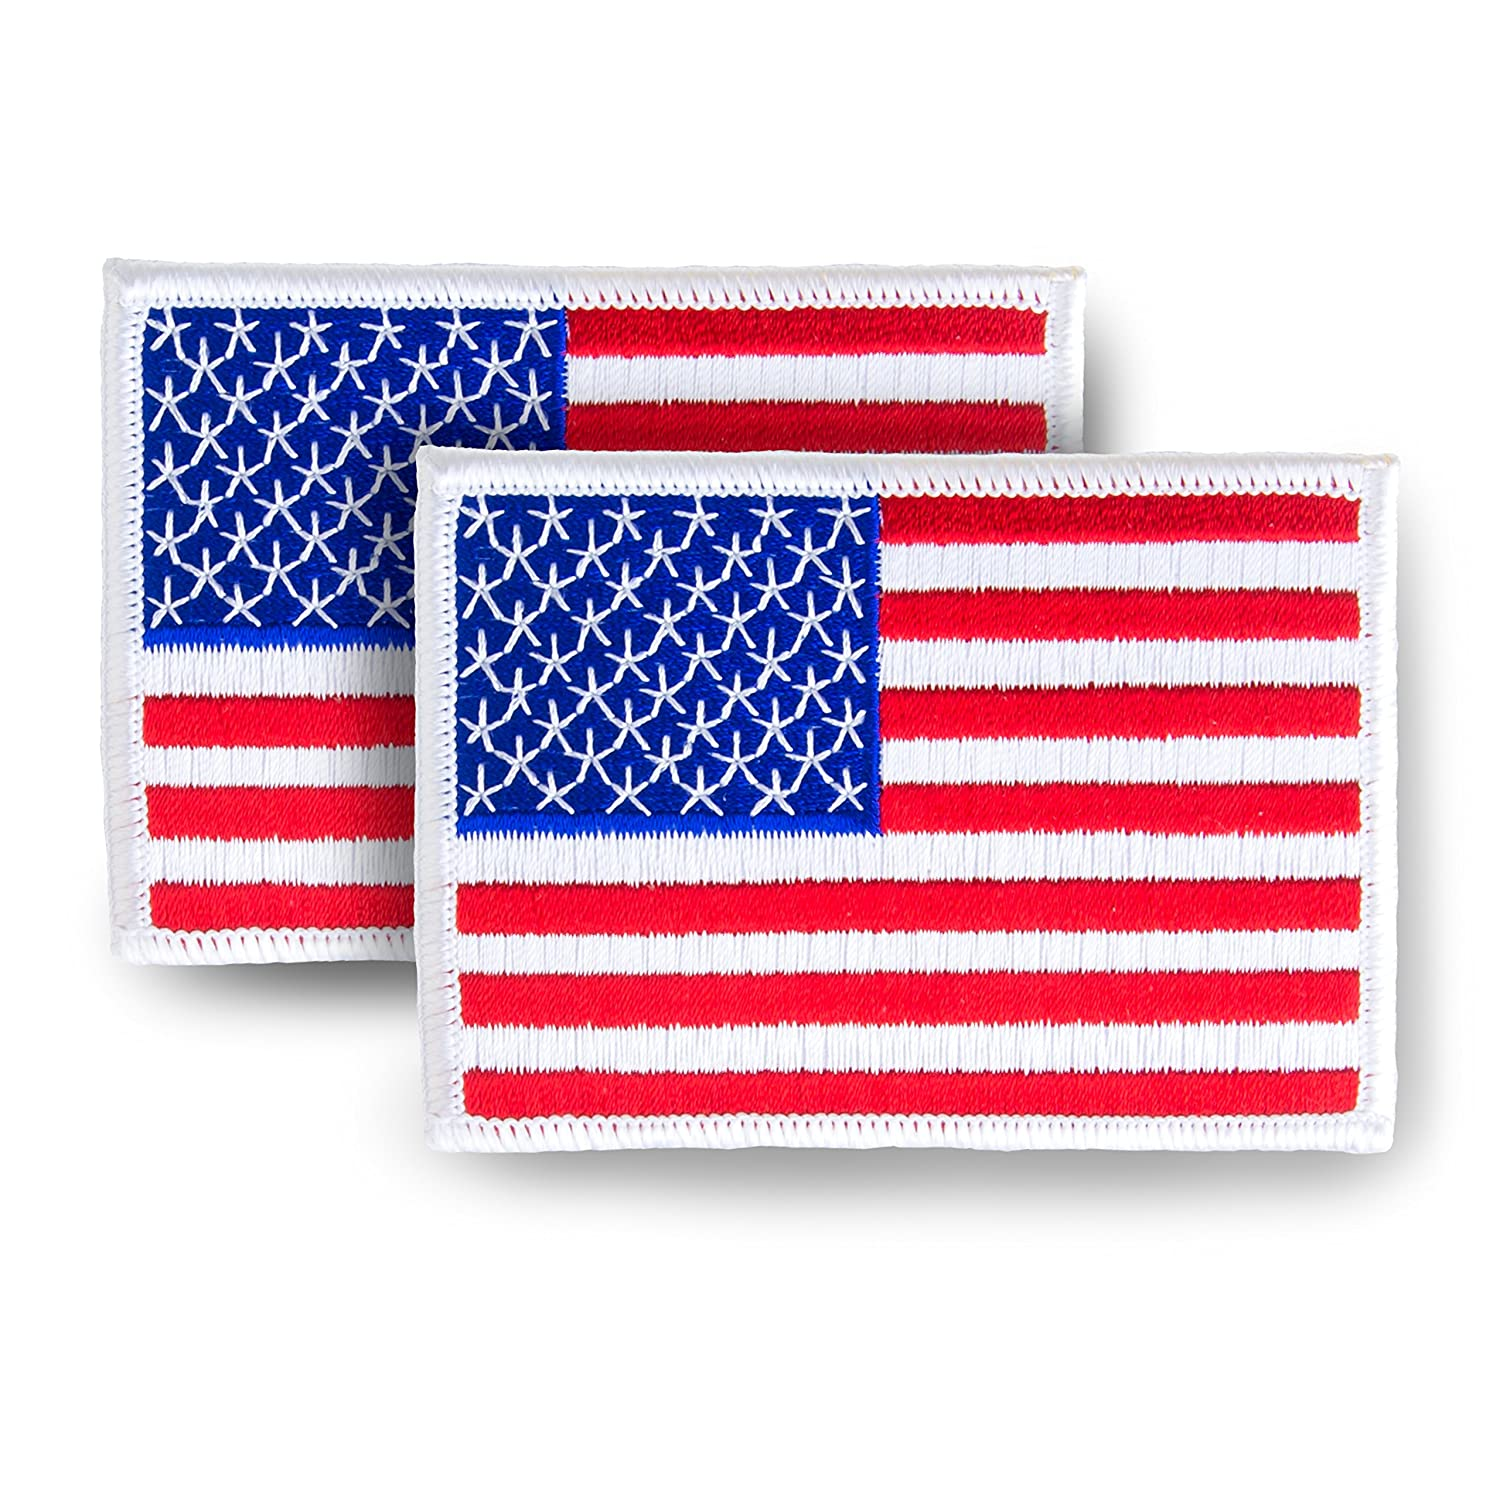 Skyhawk American Flag USA US Embroidered Iron On Sew On Patch (White Border) 3.5 x 2.5 - 2 Pack 4337025975